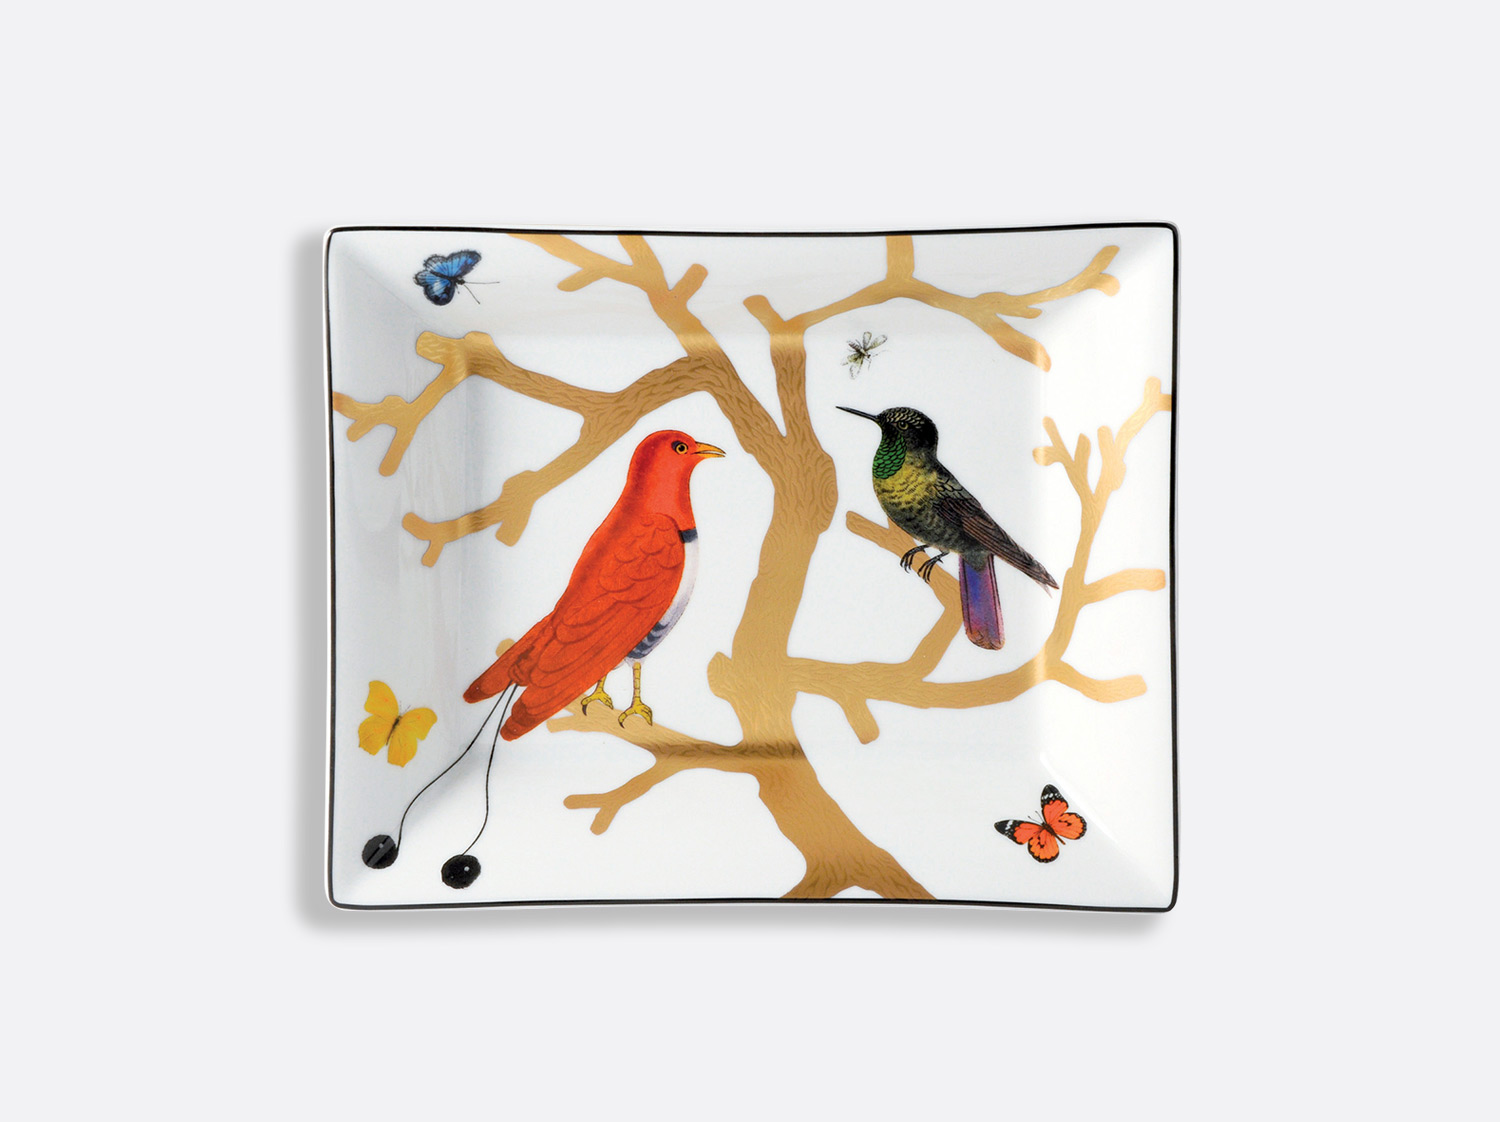 China Valet tray 20 cm x 16 cm of the collection Aux oiseaux | Bernardaud